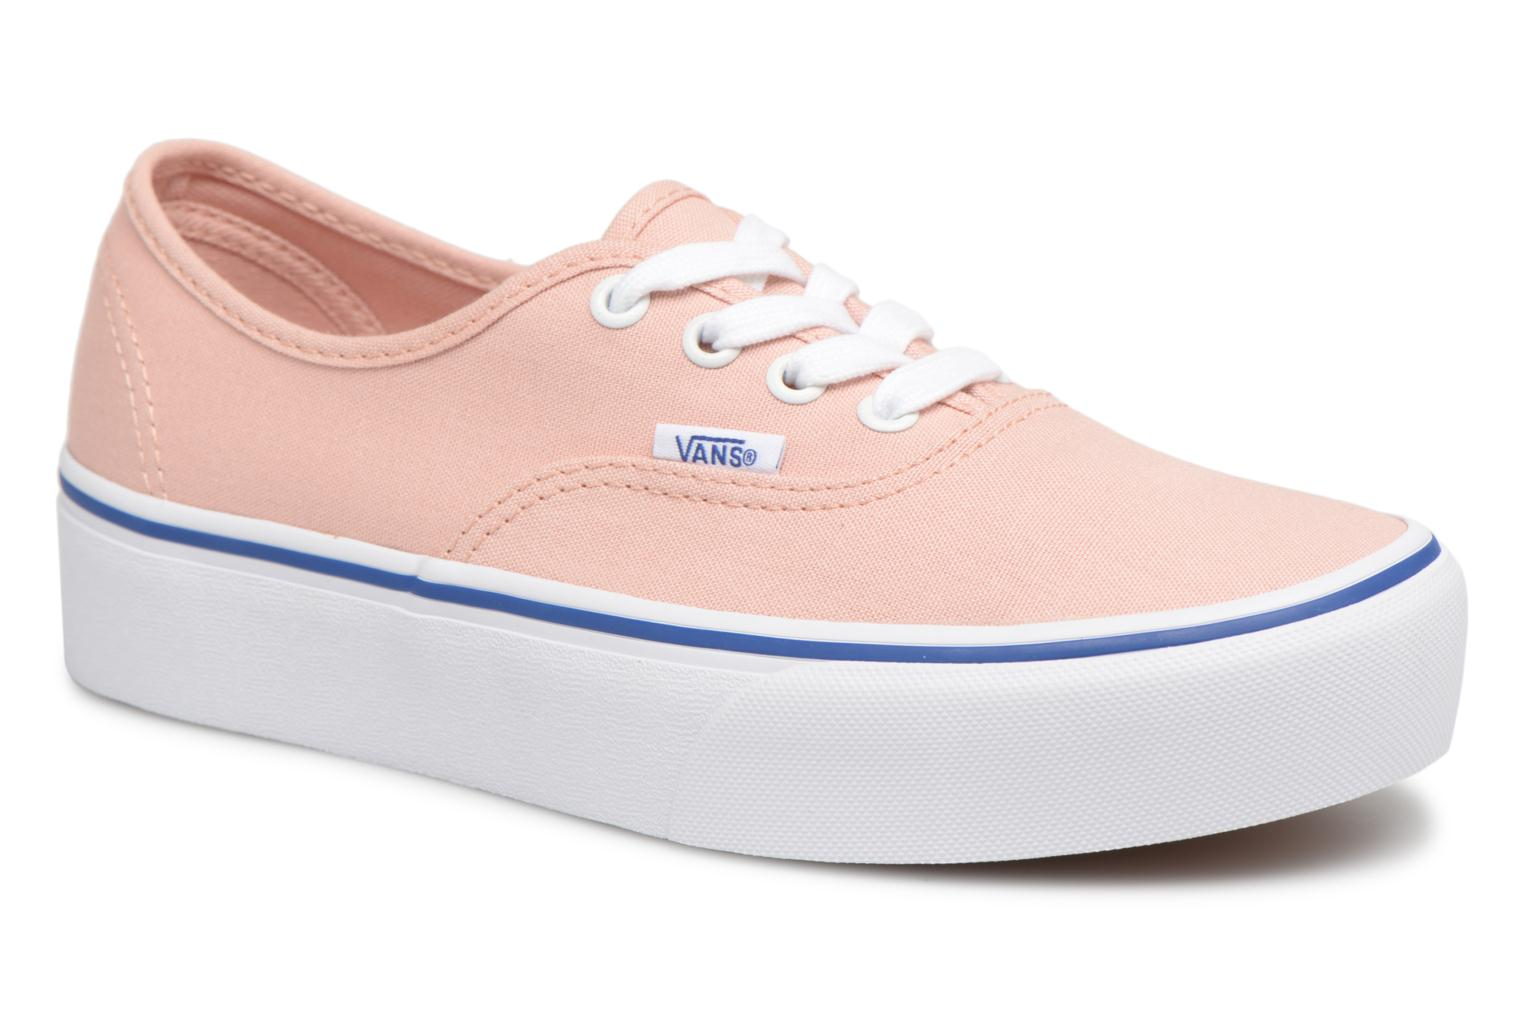 VANS UA Authentic Platform 2.0 Trainers visit sale online shop offer sale online countdown package cheap price free shipping top quality ZXiCvKLI5